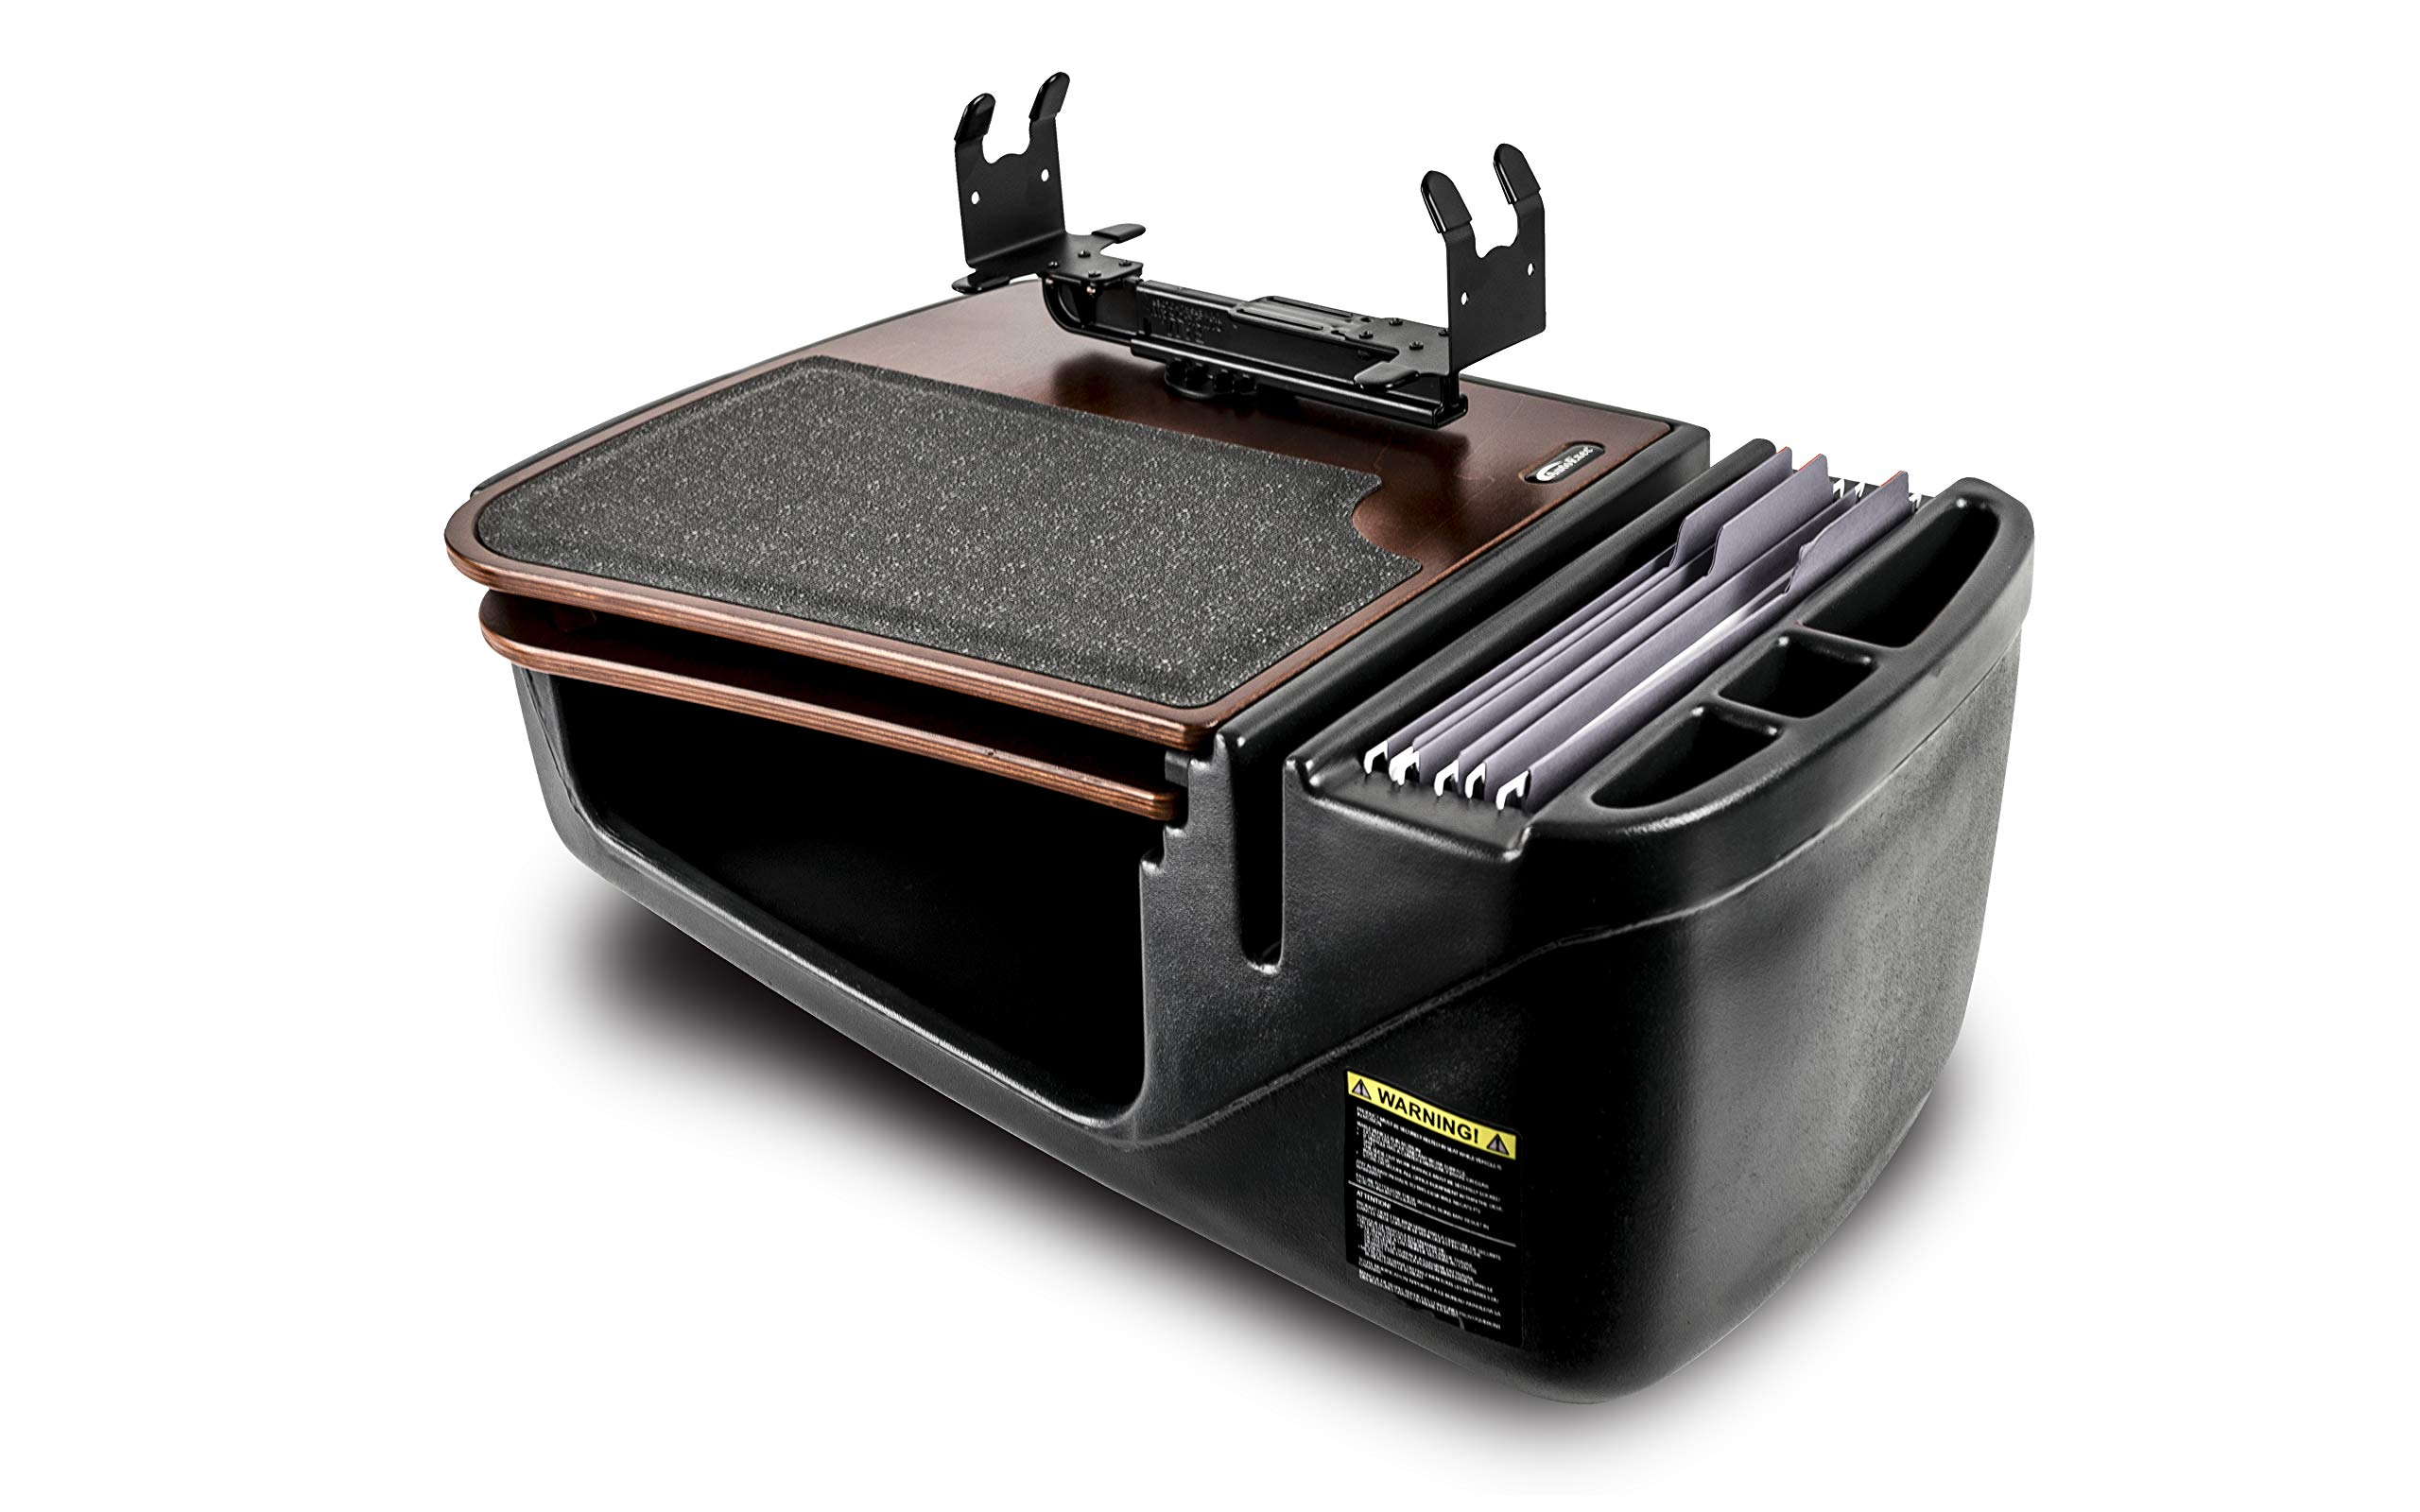 AutoExec AUE12059 GripMaster Car Desk (Mahogany Finish with Printer Stand and Built-in Power Inverter)